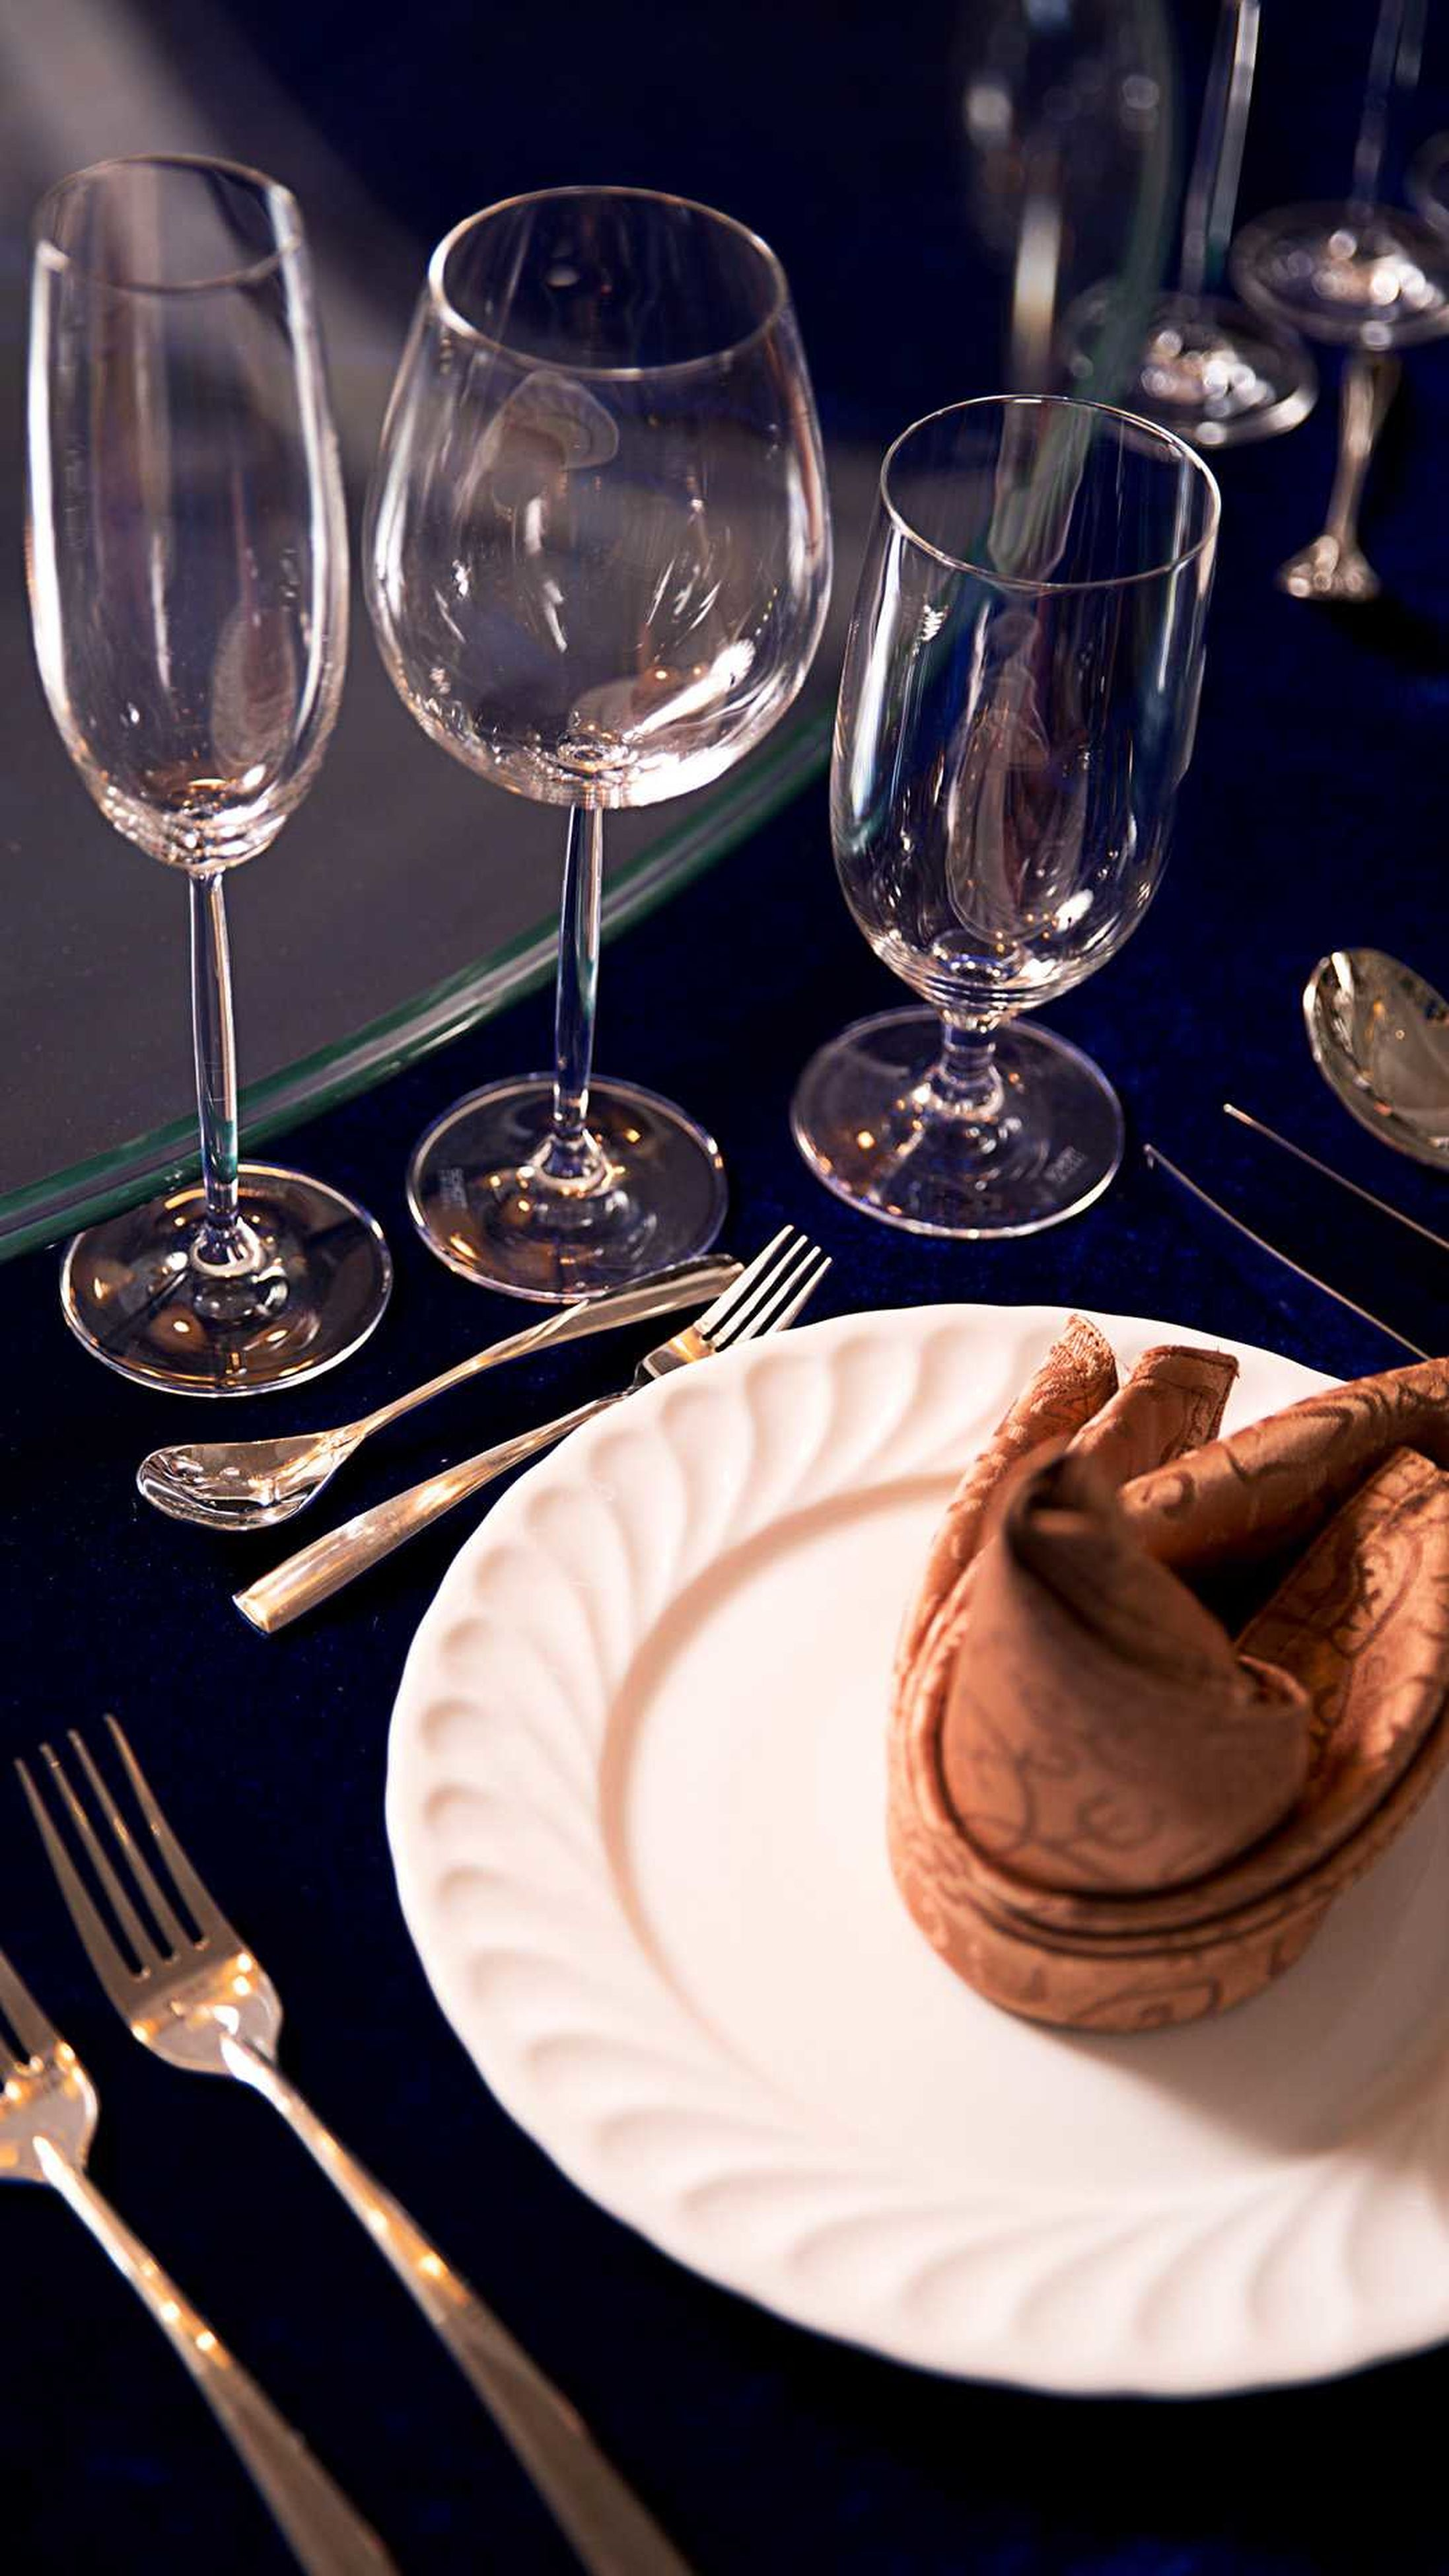 food and drink, plate, table, wineglass, no people, indoors, sweet food, food, wine, close-up, freshness, day